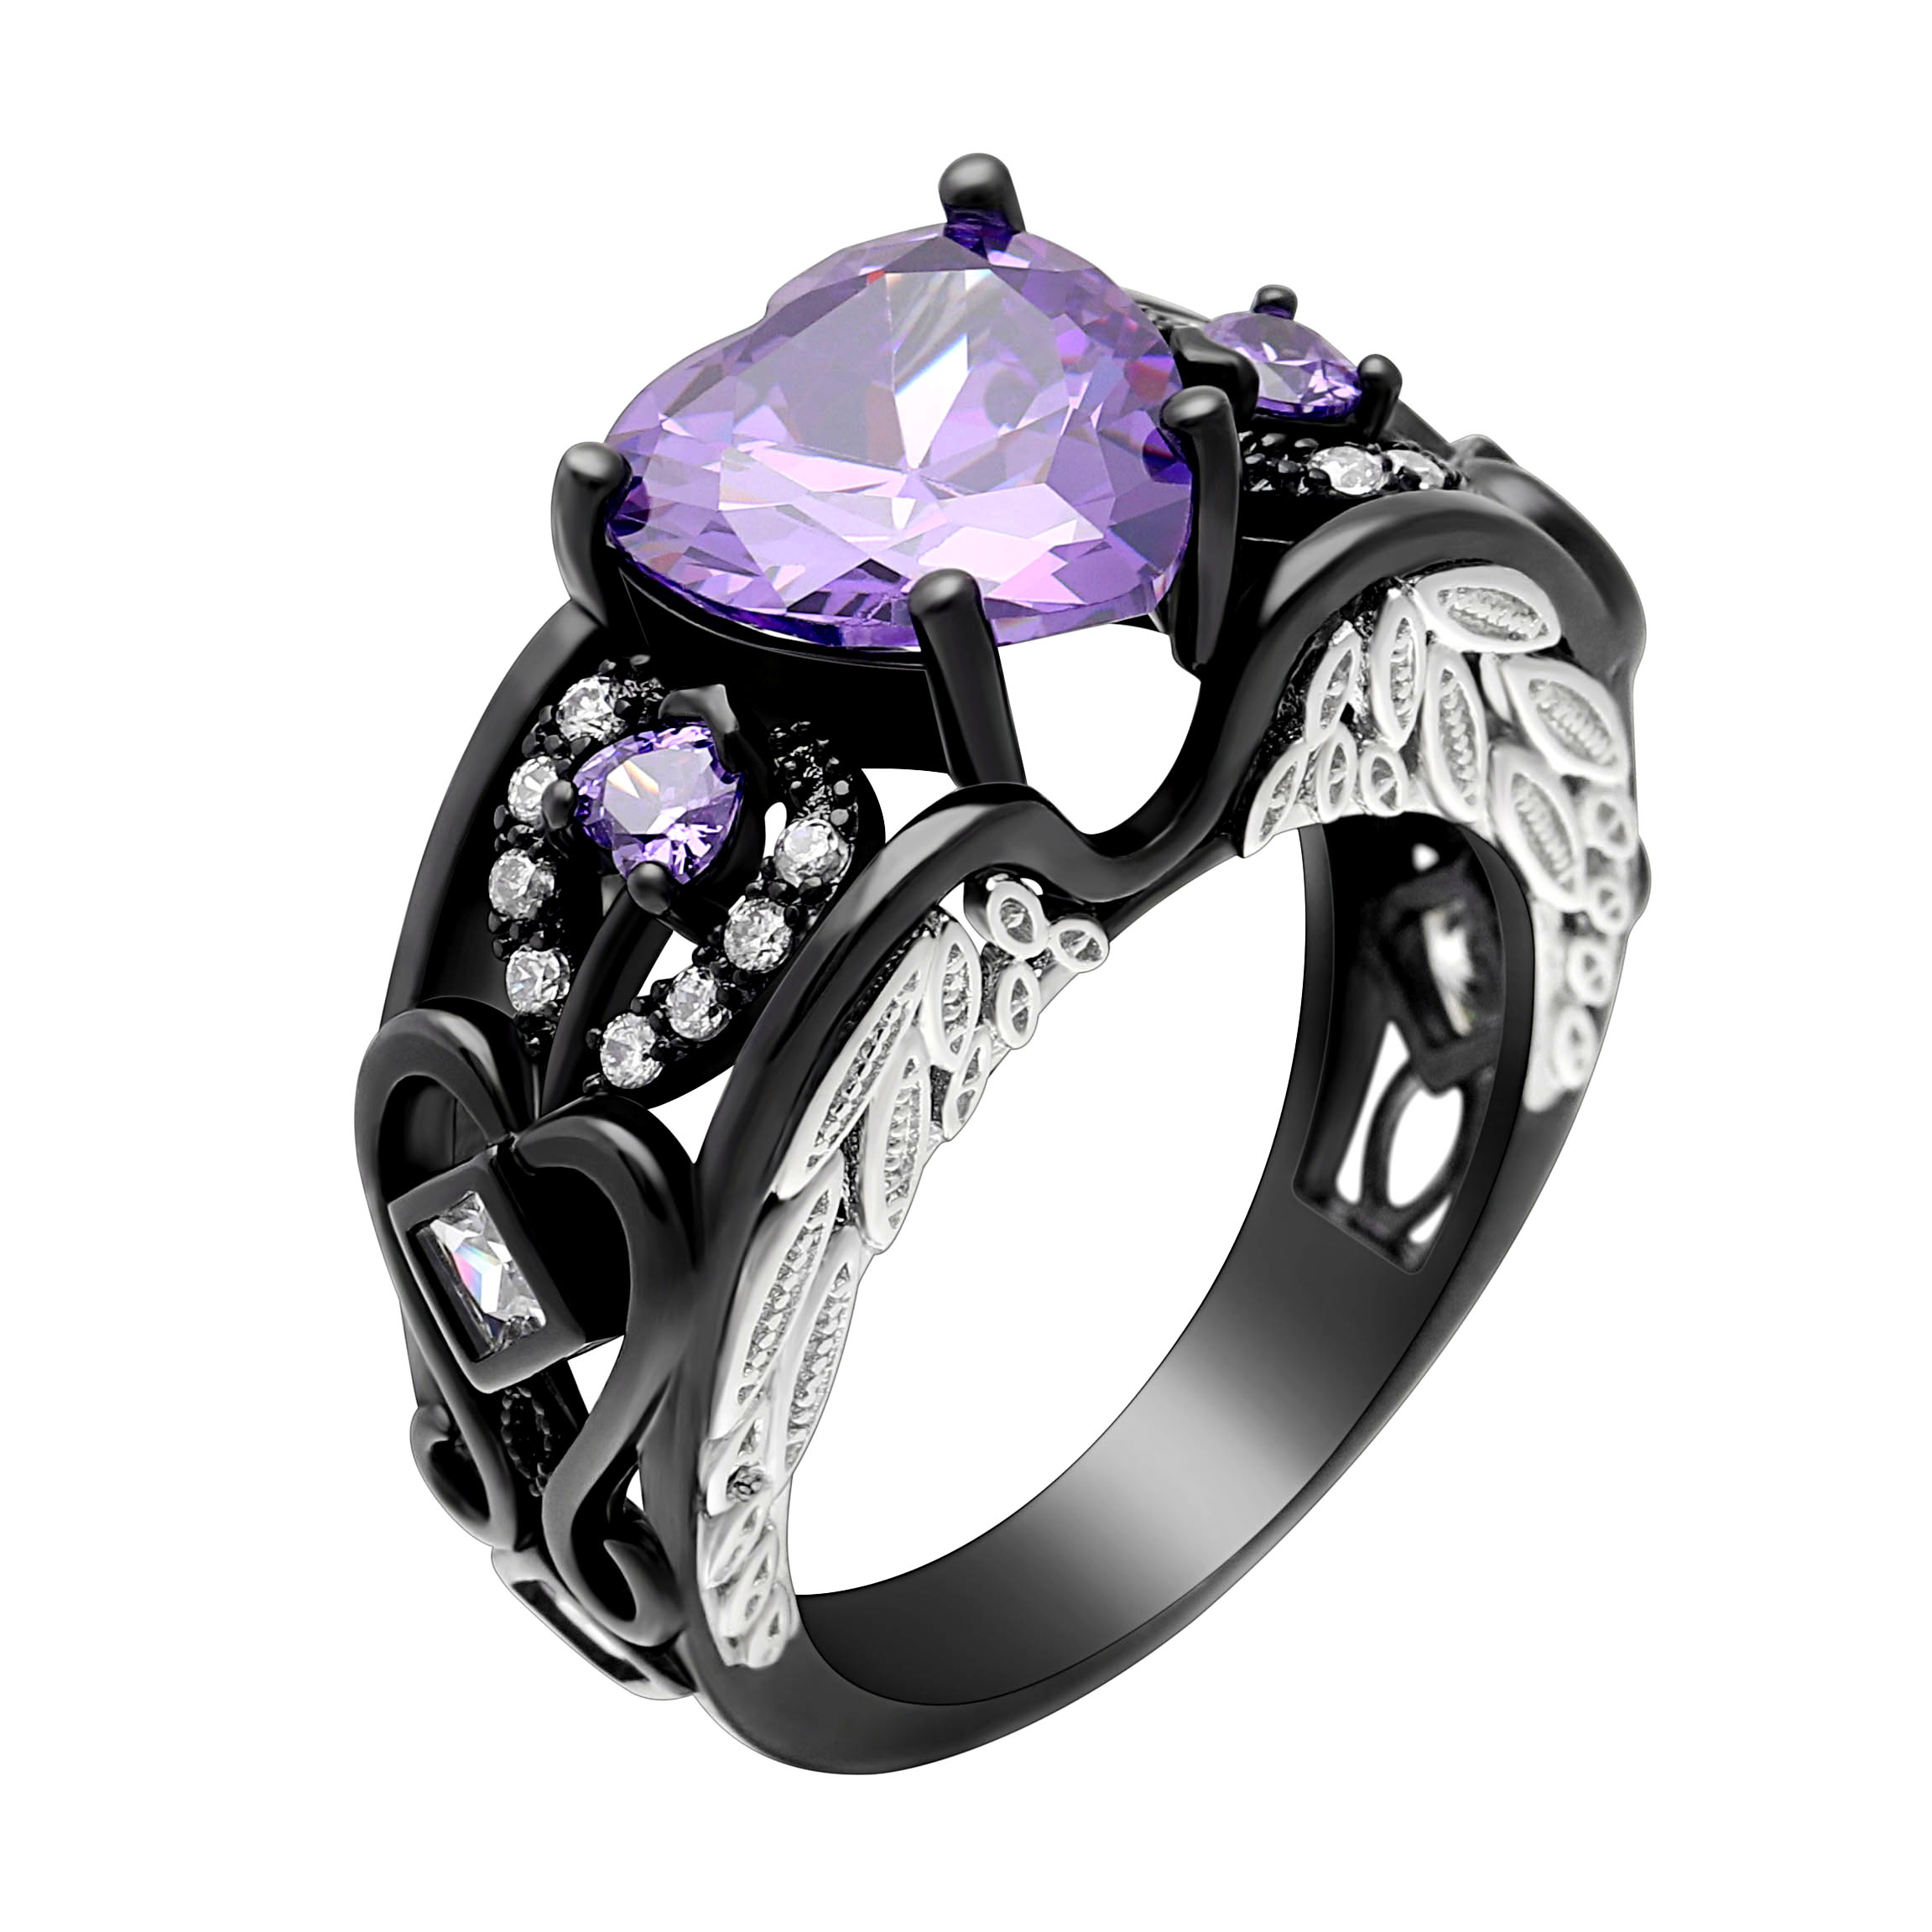 addiction the to birthstone rings heart mother wedding bypass stone s close mothers cz eve ring